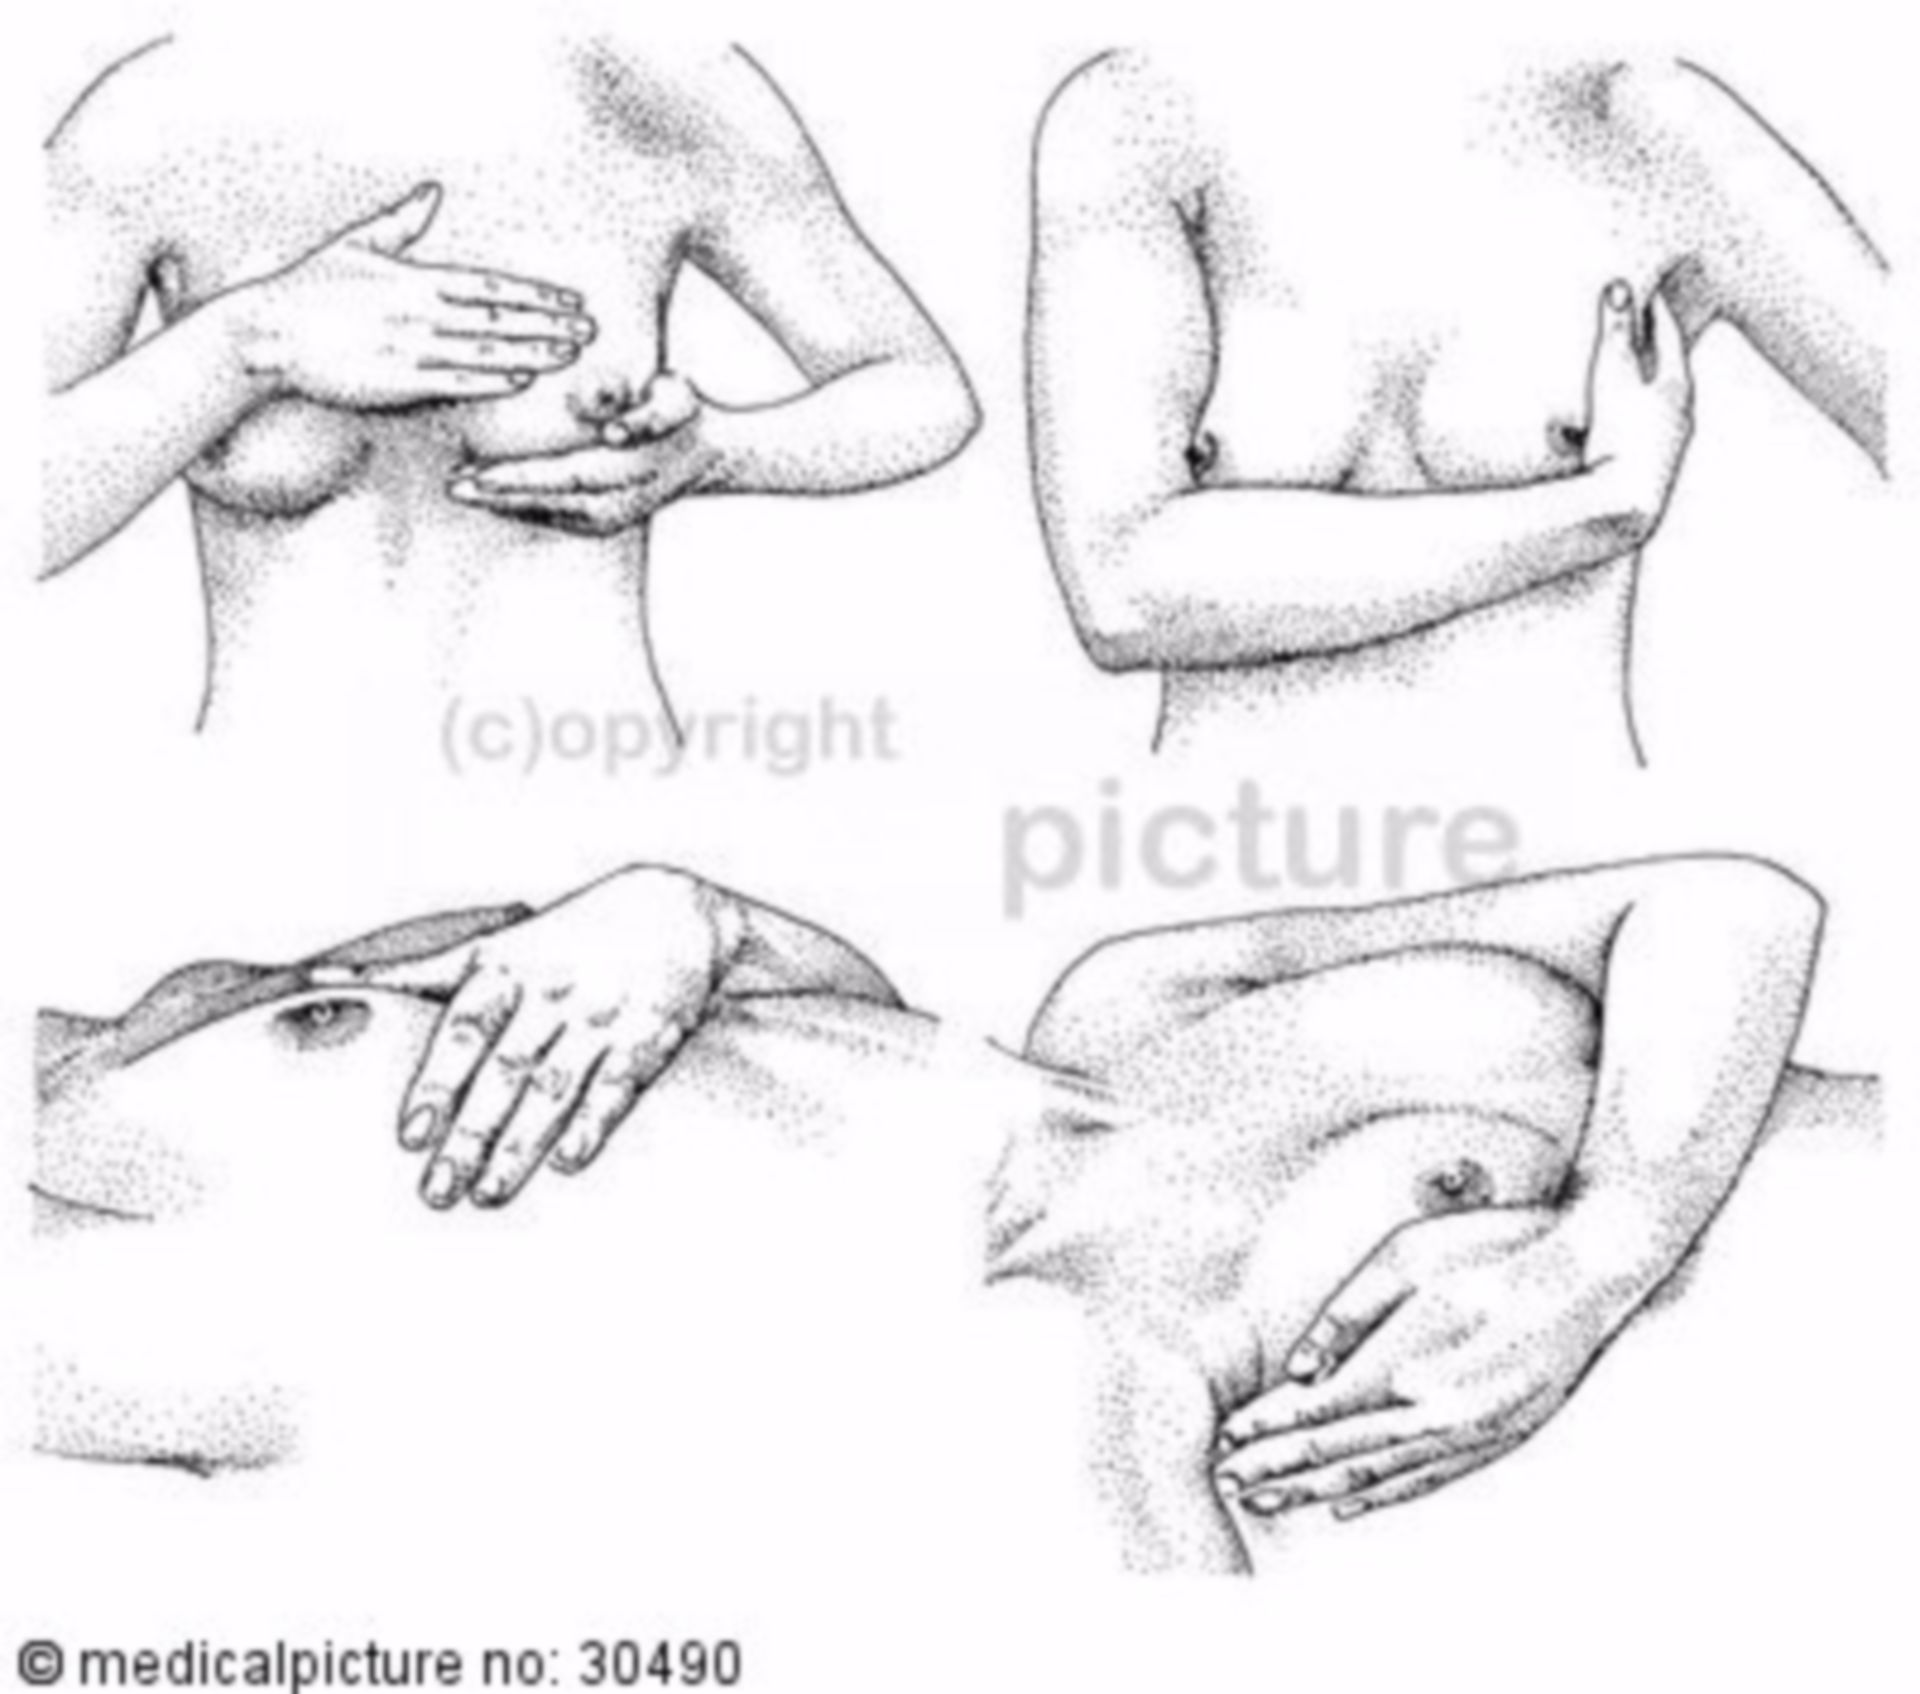 Palpation of the breast